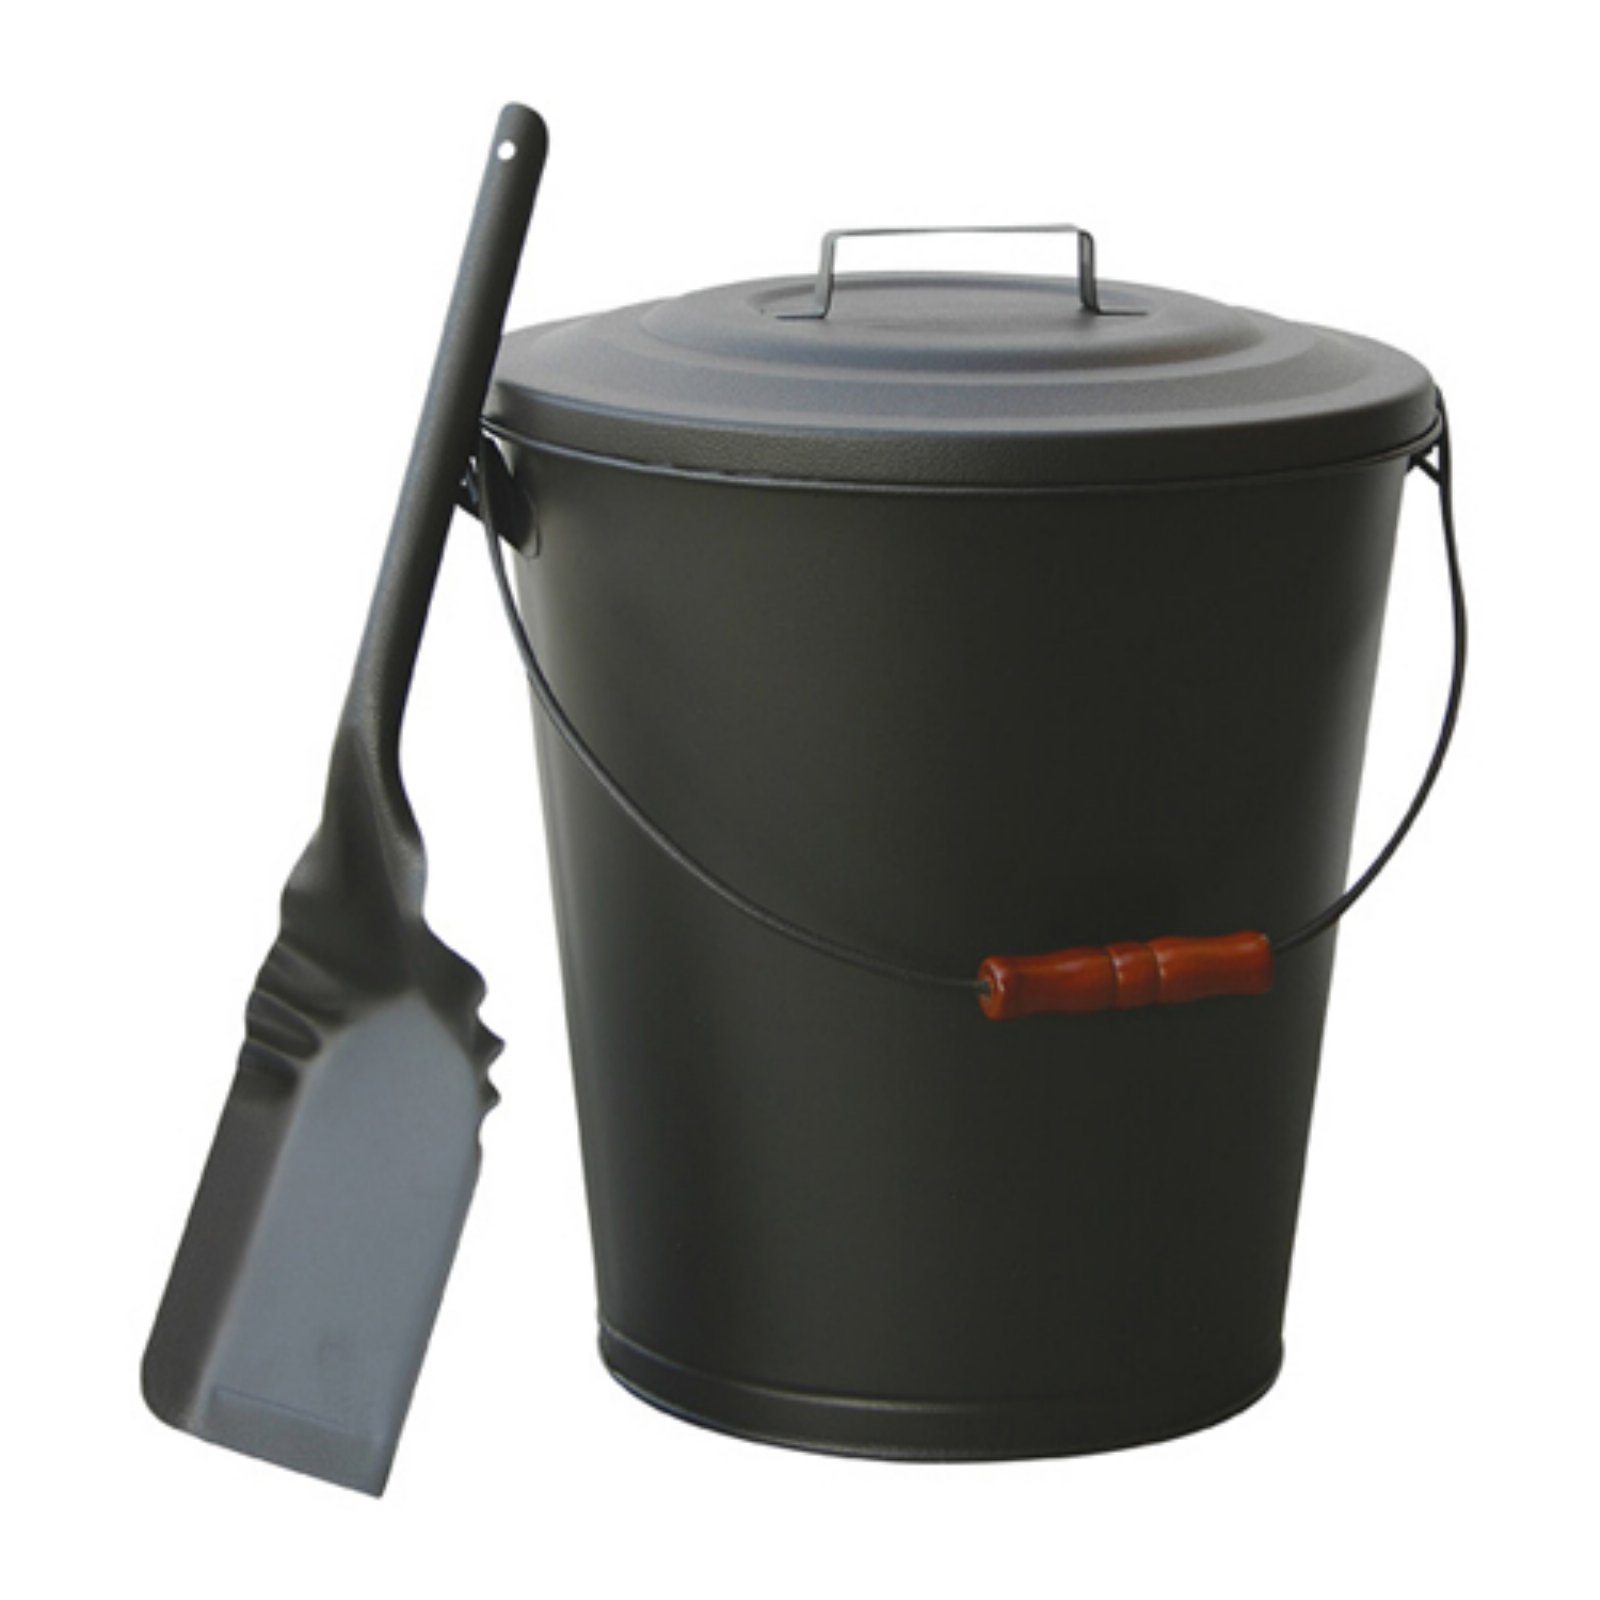 Uniflame Olde World Iron Finish Ash Bin with Lid and Shovel